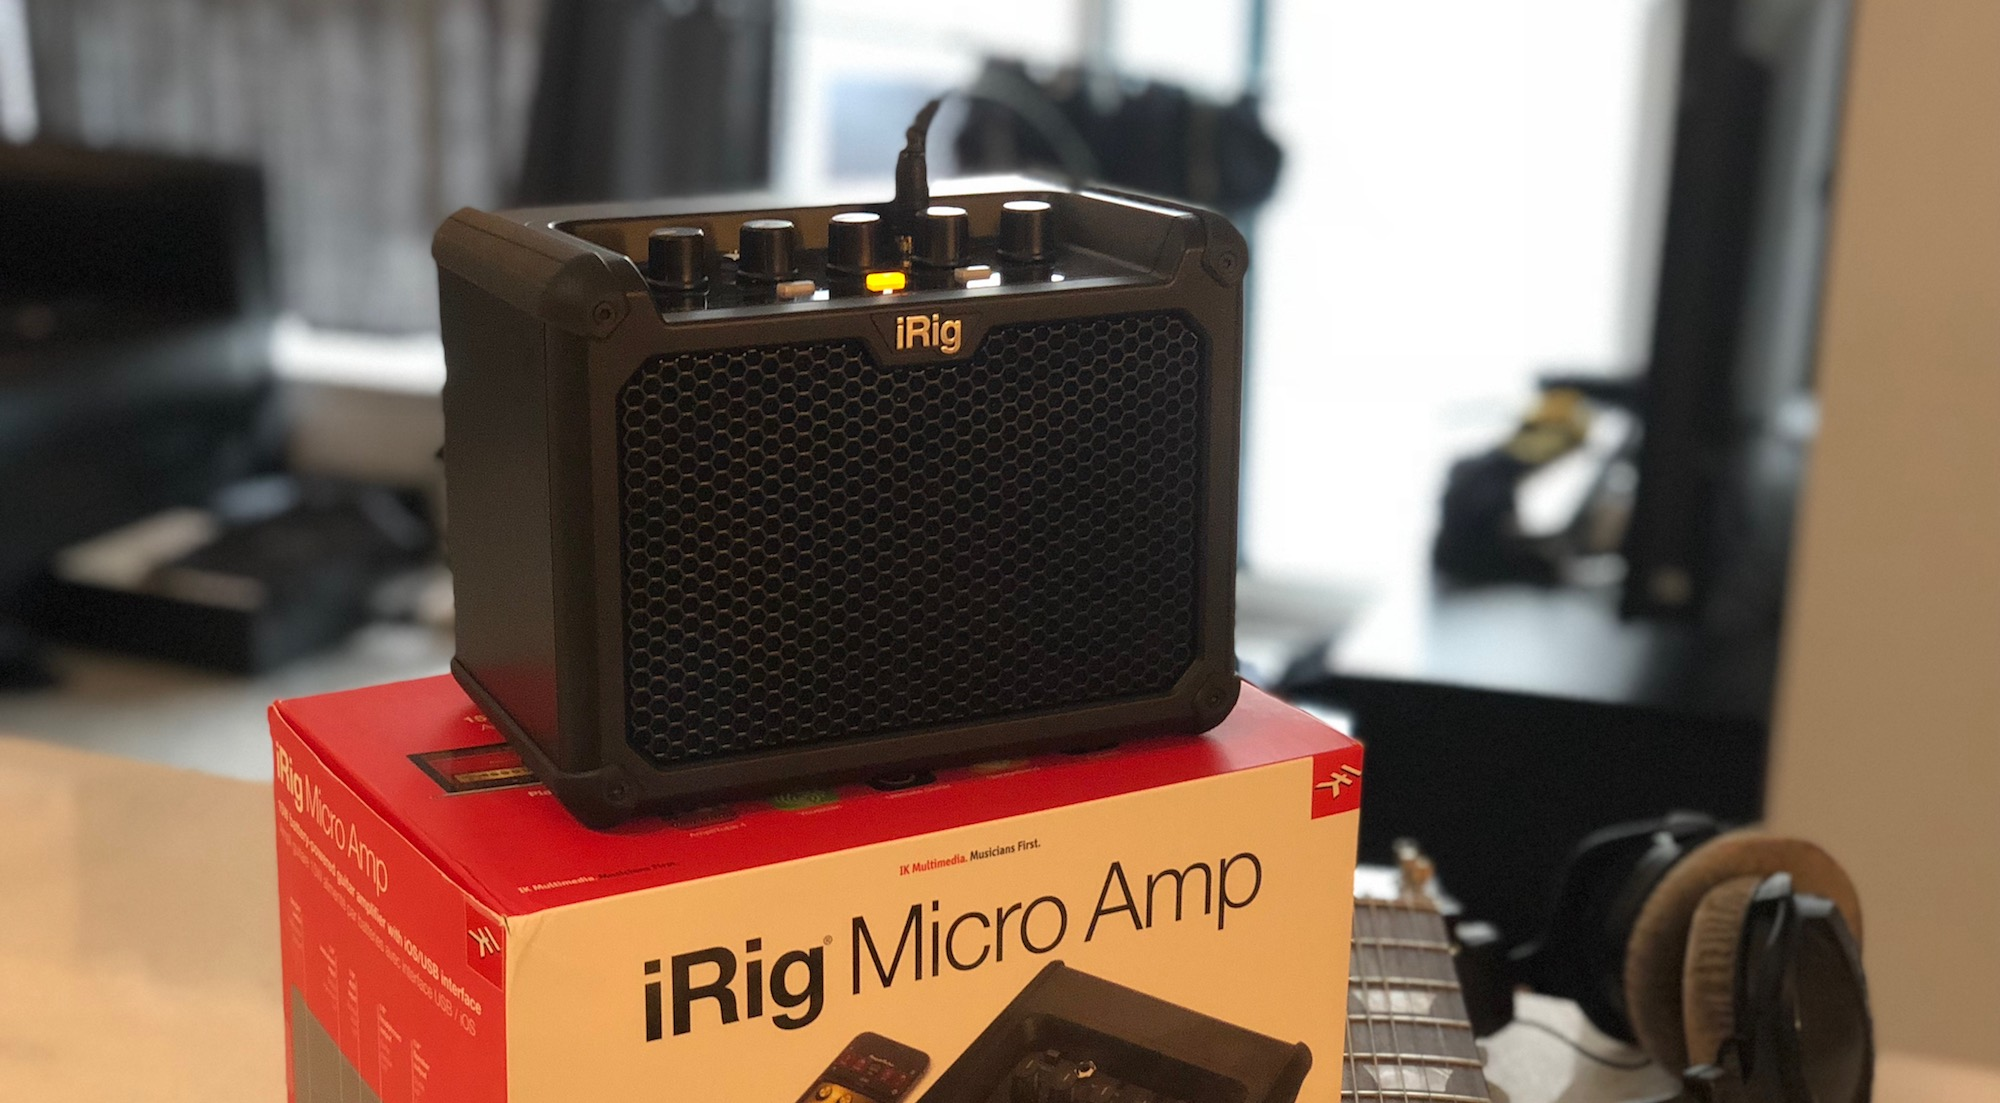 iRig Micro mini guitar amp unboxing